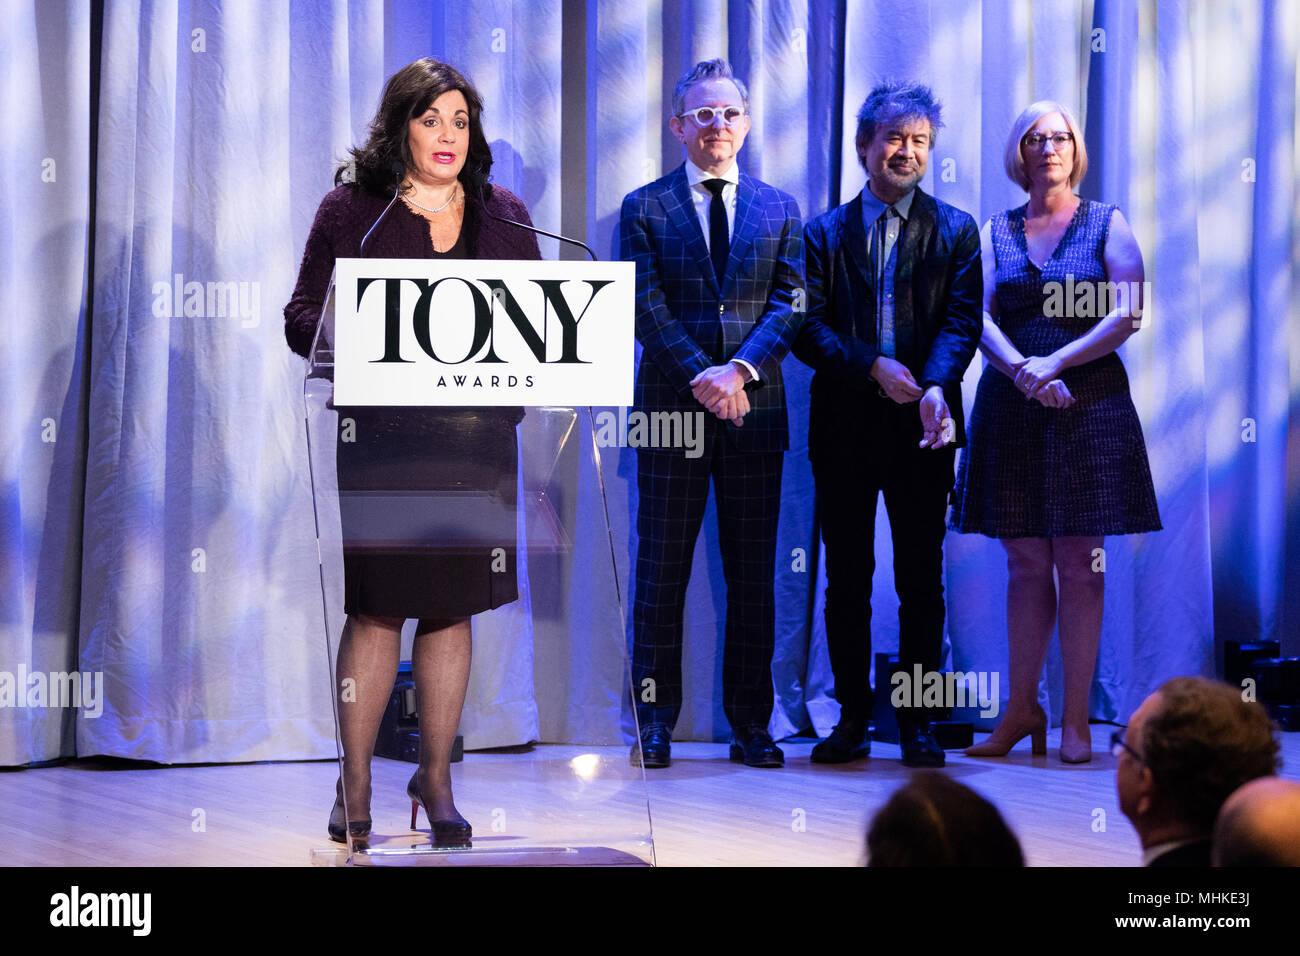 Charlotte St. Martin, President of The Broadway League, speaking at the Tony Awards nominations announcements in New York City. - Stock Image